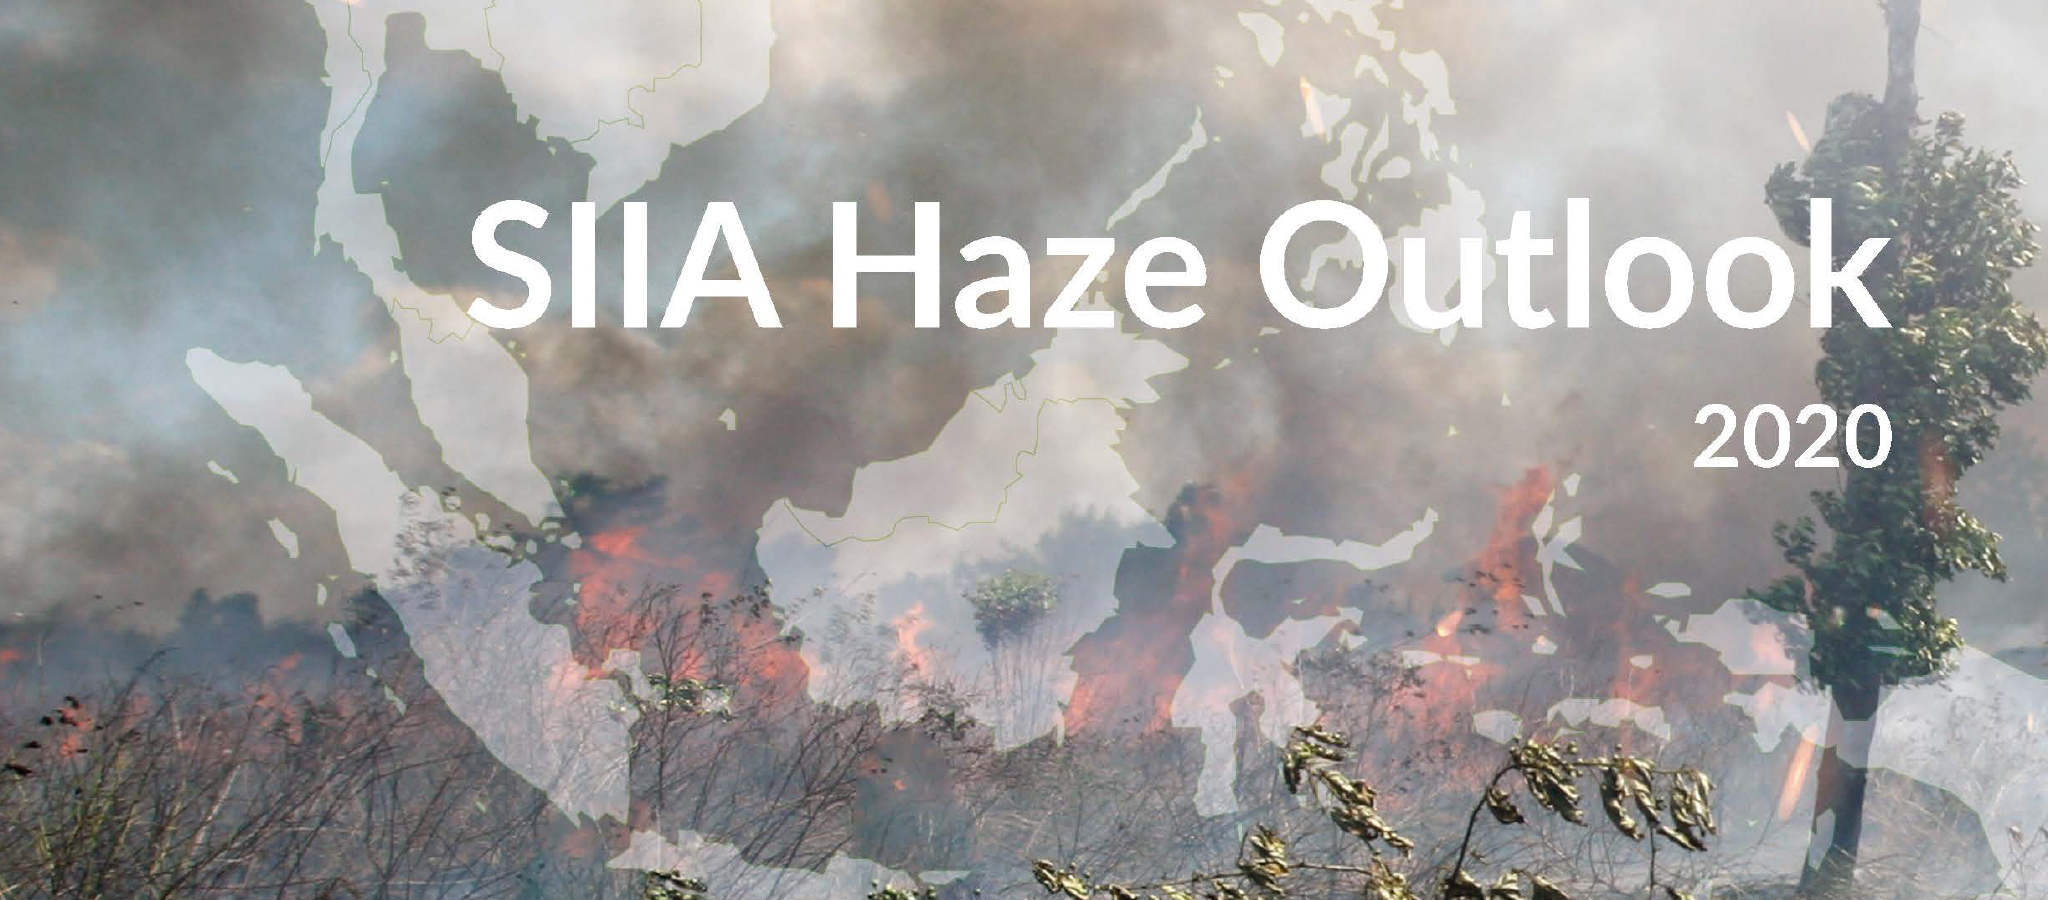 Haze-Outlook-Cover-banner